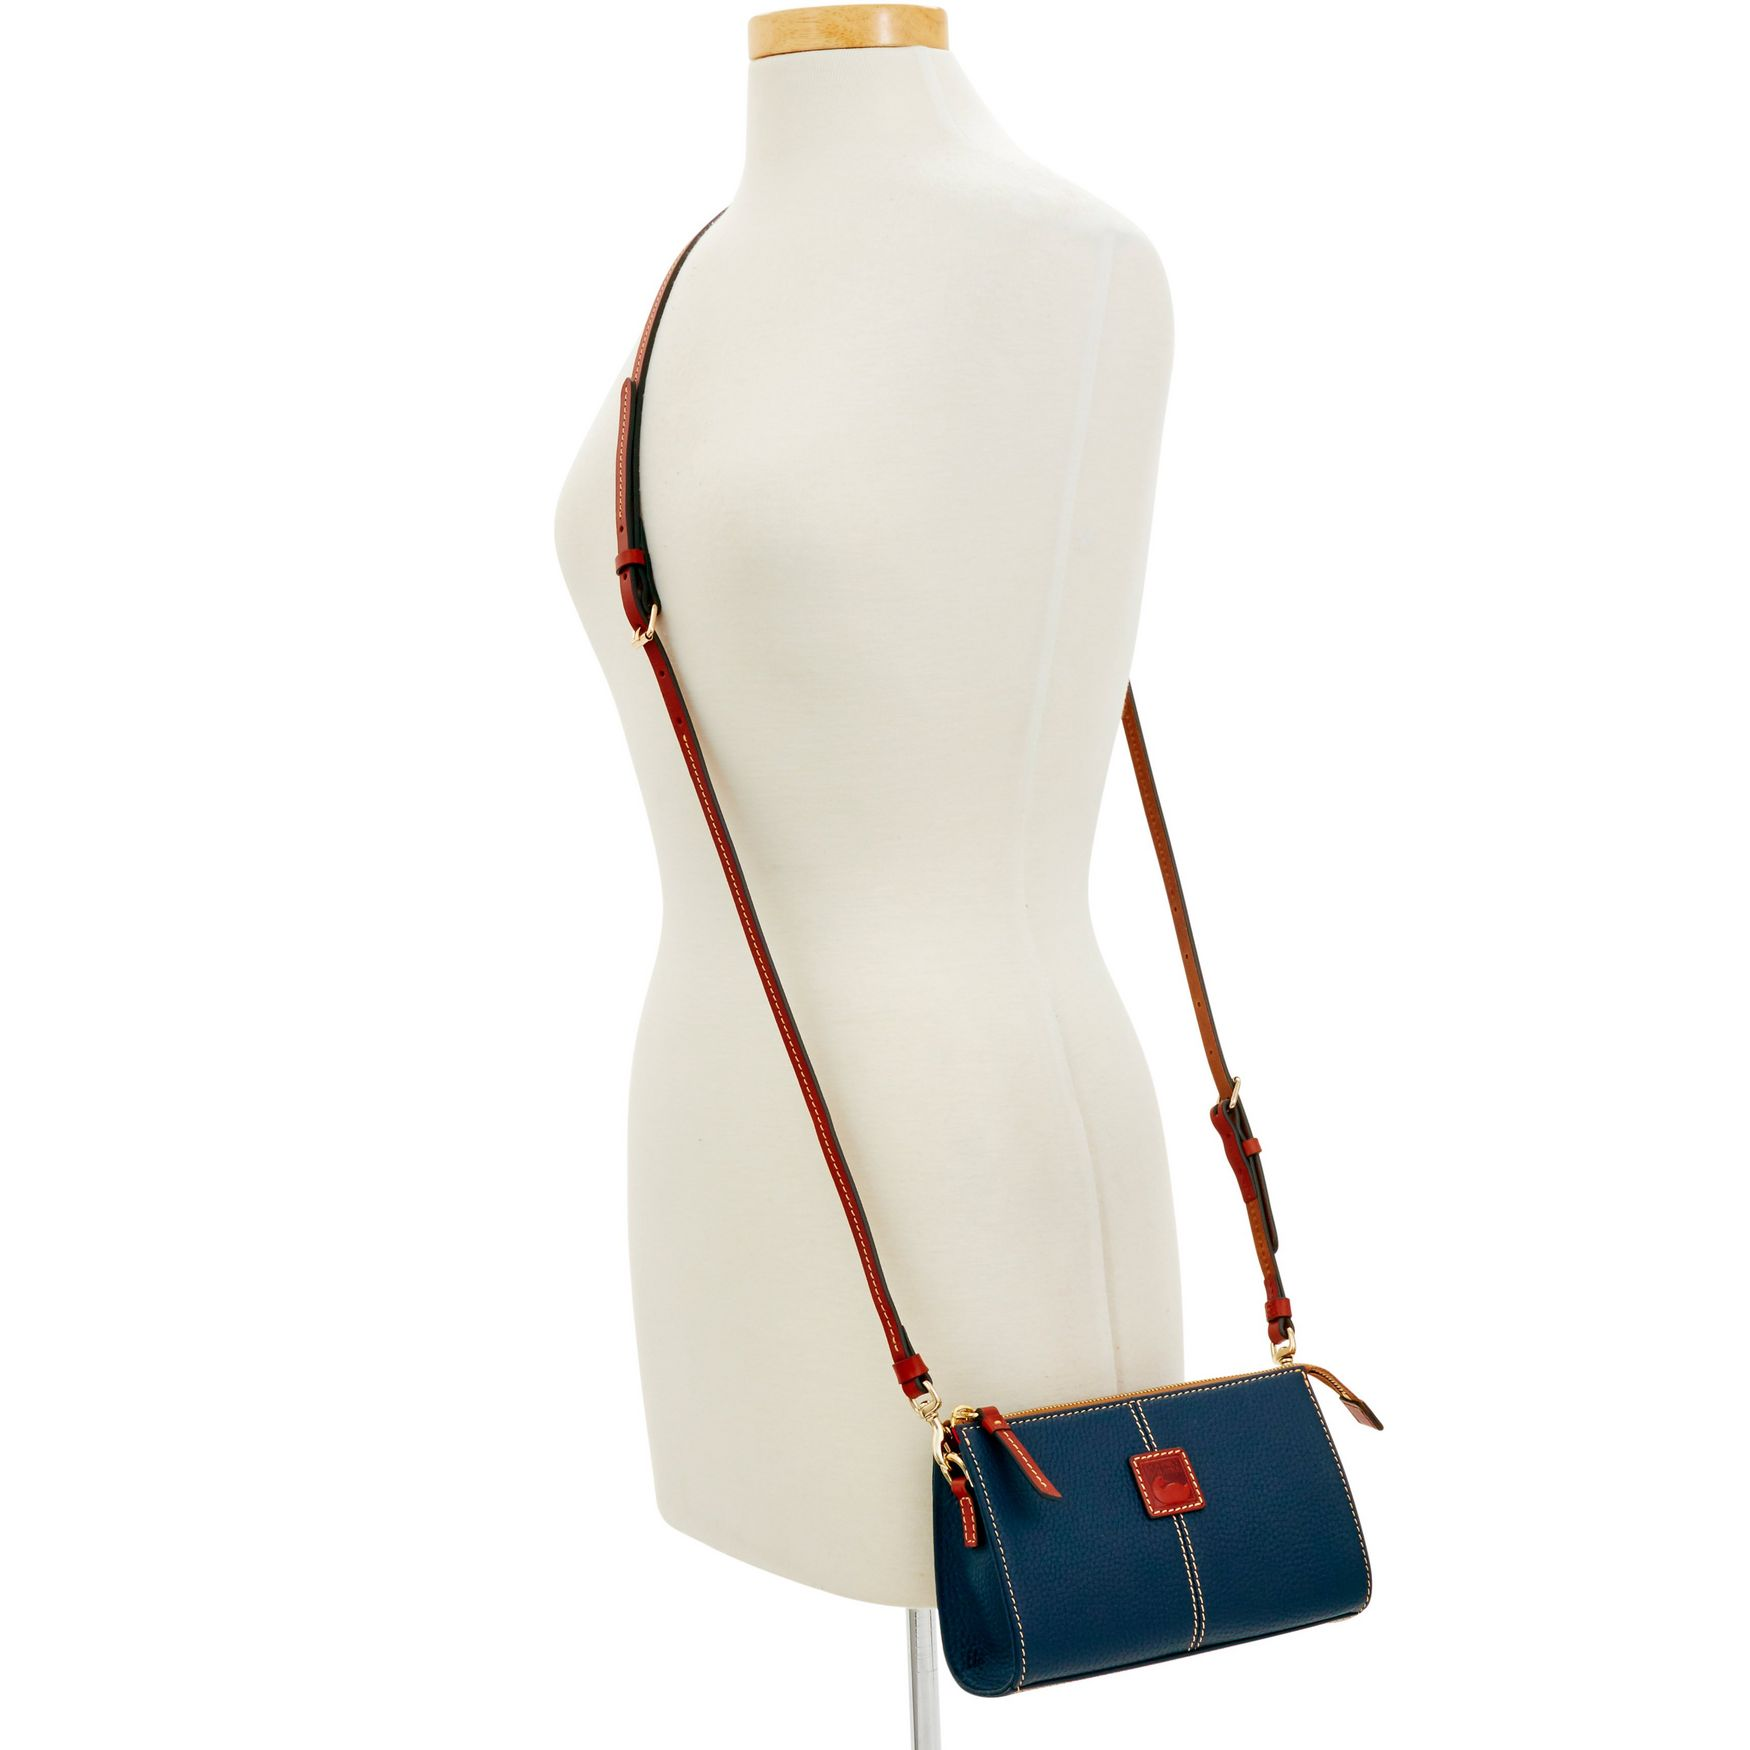 Dooney-amp-Bourke-Pebble-Grain-Small-Janine-Crossbody-Shoulder-Bag thumbnail 34